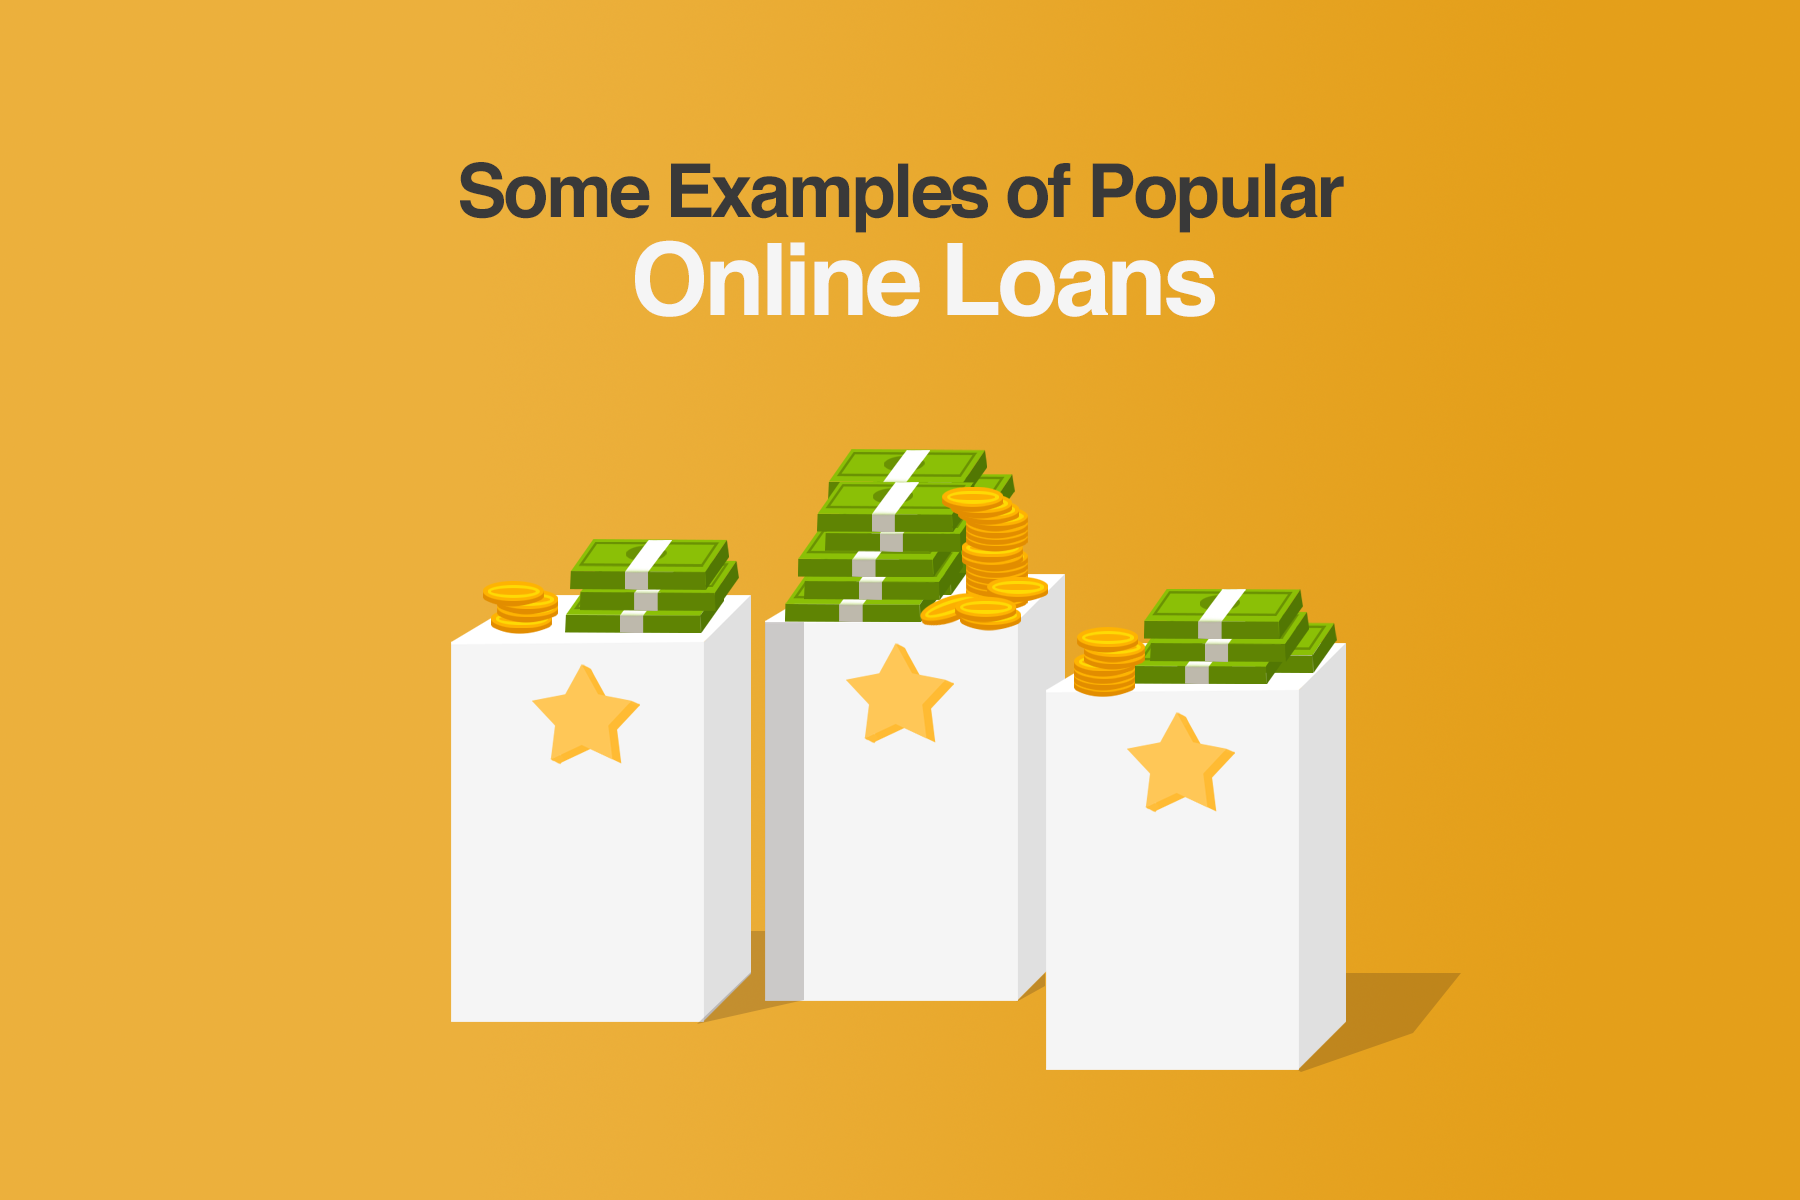 Some Examples of Popular Online Loans